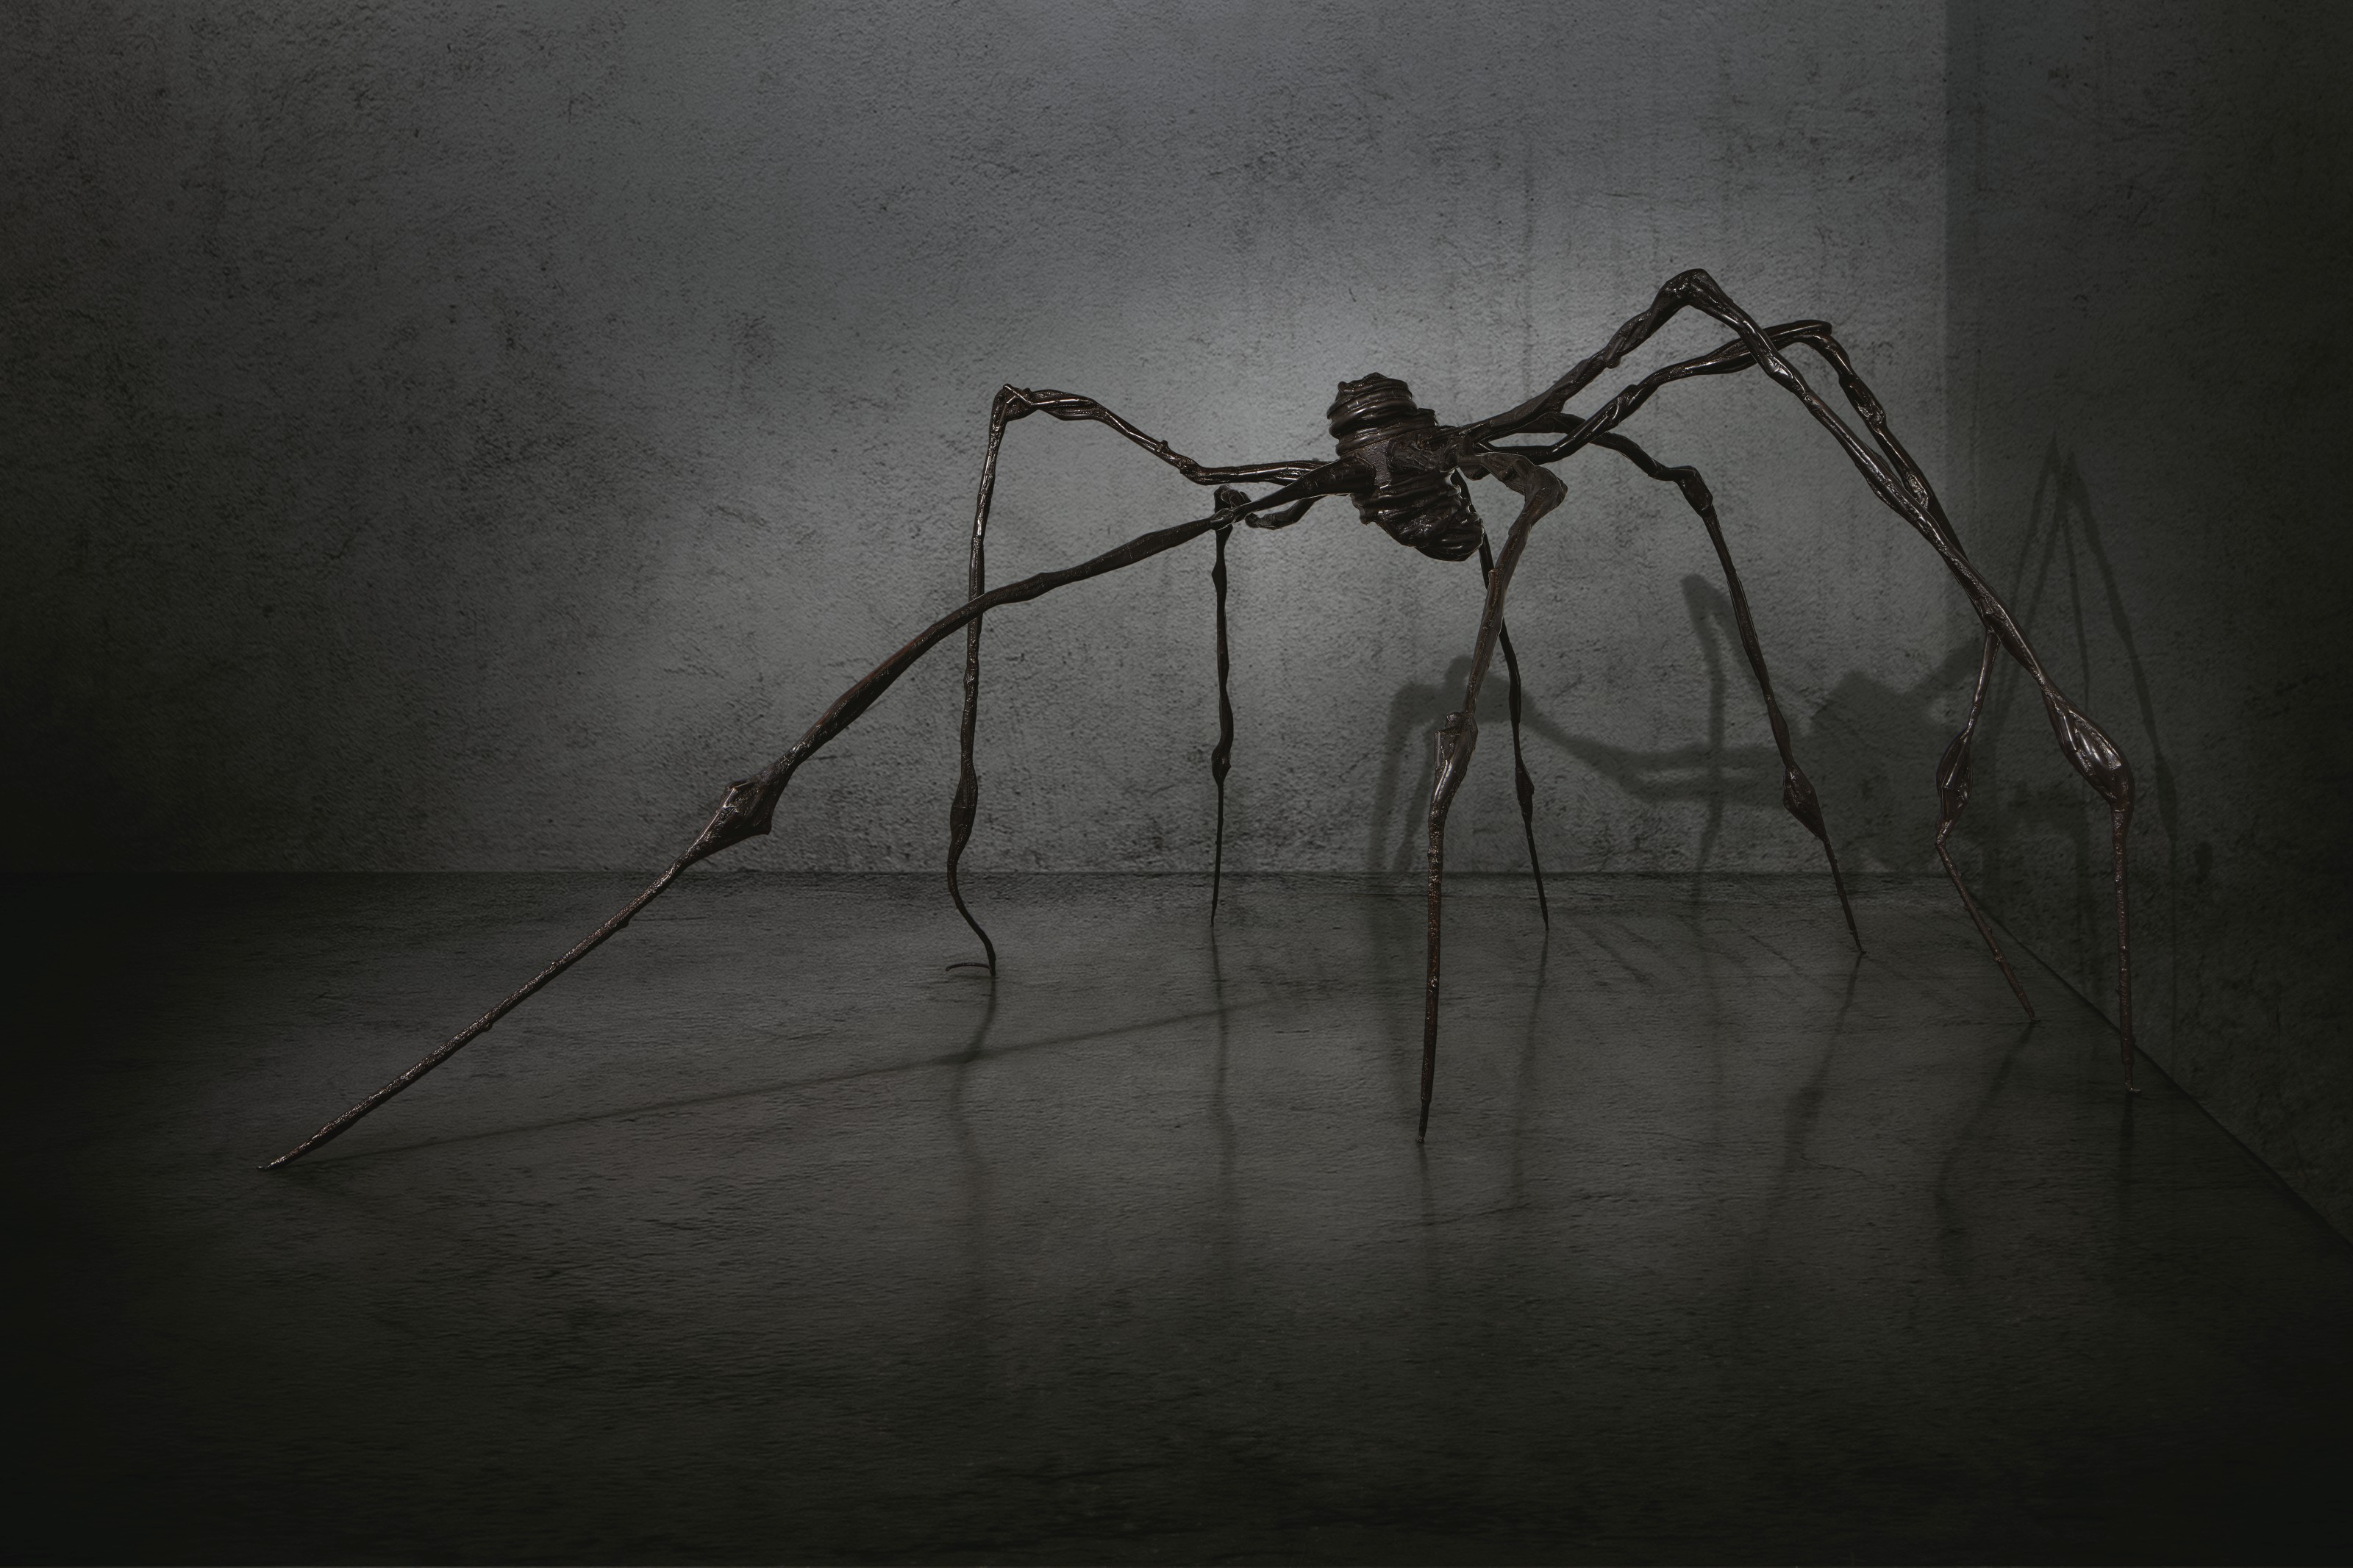 Louise Bourgeois (1911-2010), Spider. Bronze. 128½ x 298 x 278  in (326.3 x 756.9 x 706.1  cm). Conceived in 1996 and cast in 1997. Sold for $32,055,000 on 15 May 2019 at Christie's in New York. Artwork © The Easton FoundationVAGA at ARS, NY and DACS, London 2021